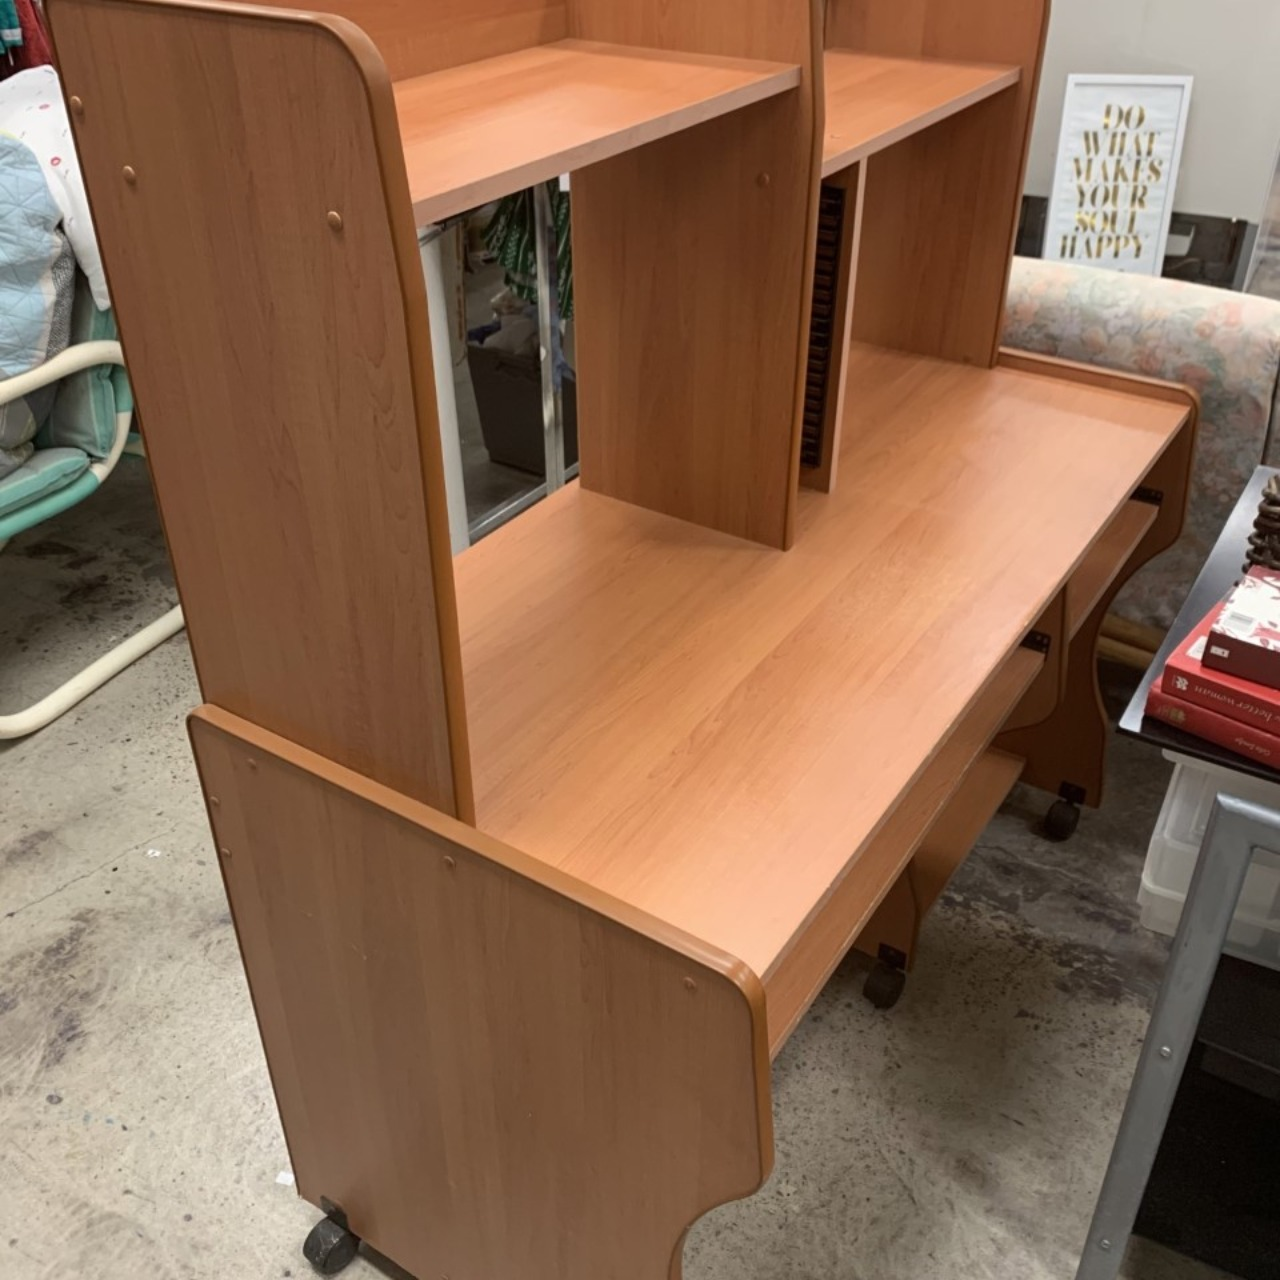 Brown wooden pullout desk with shelving